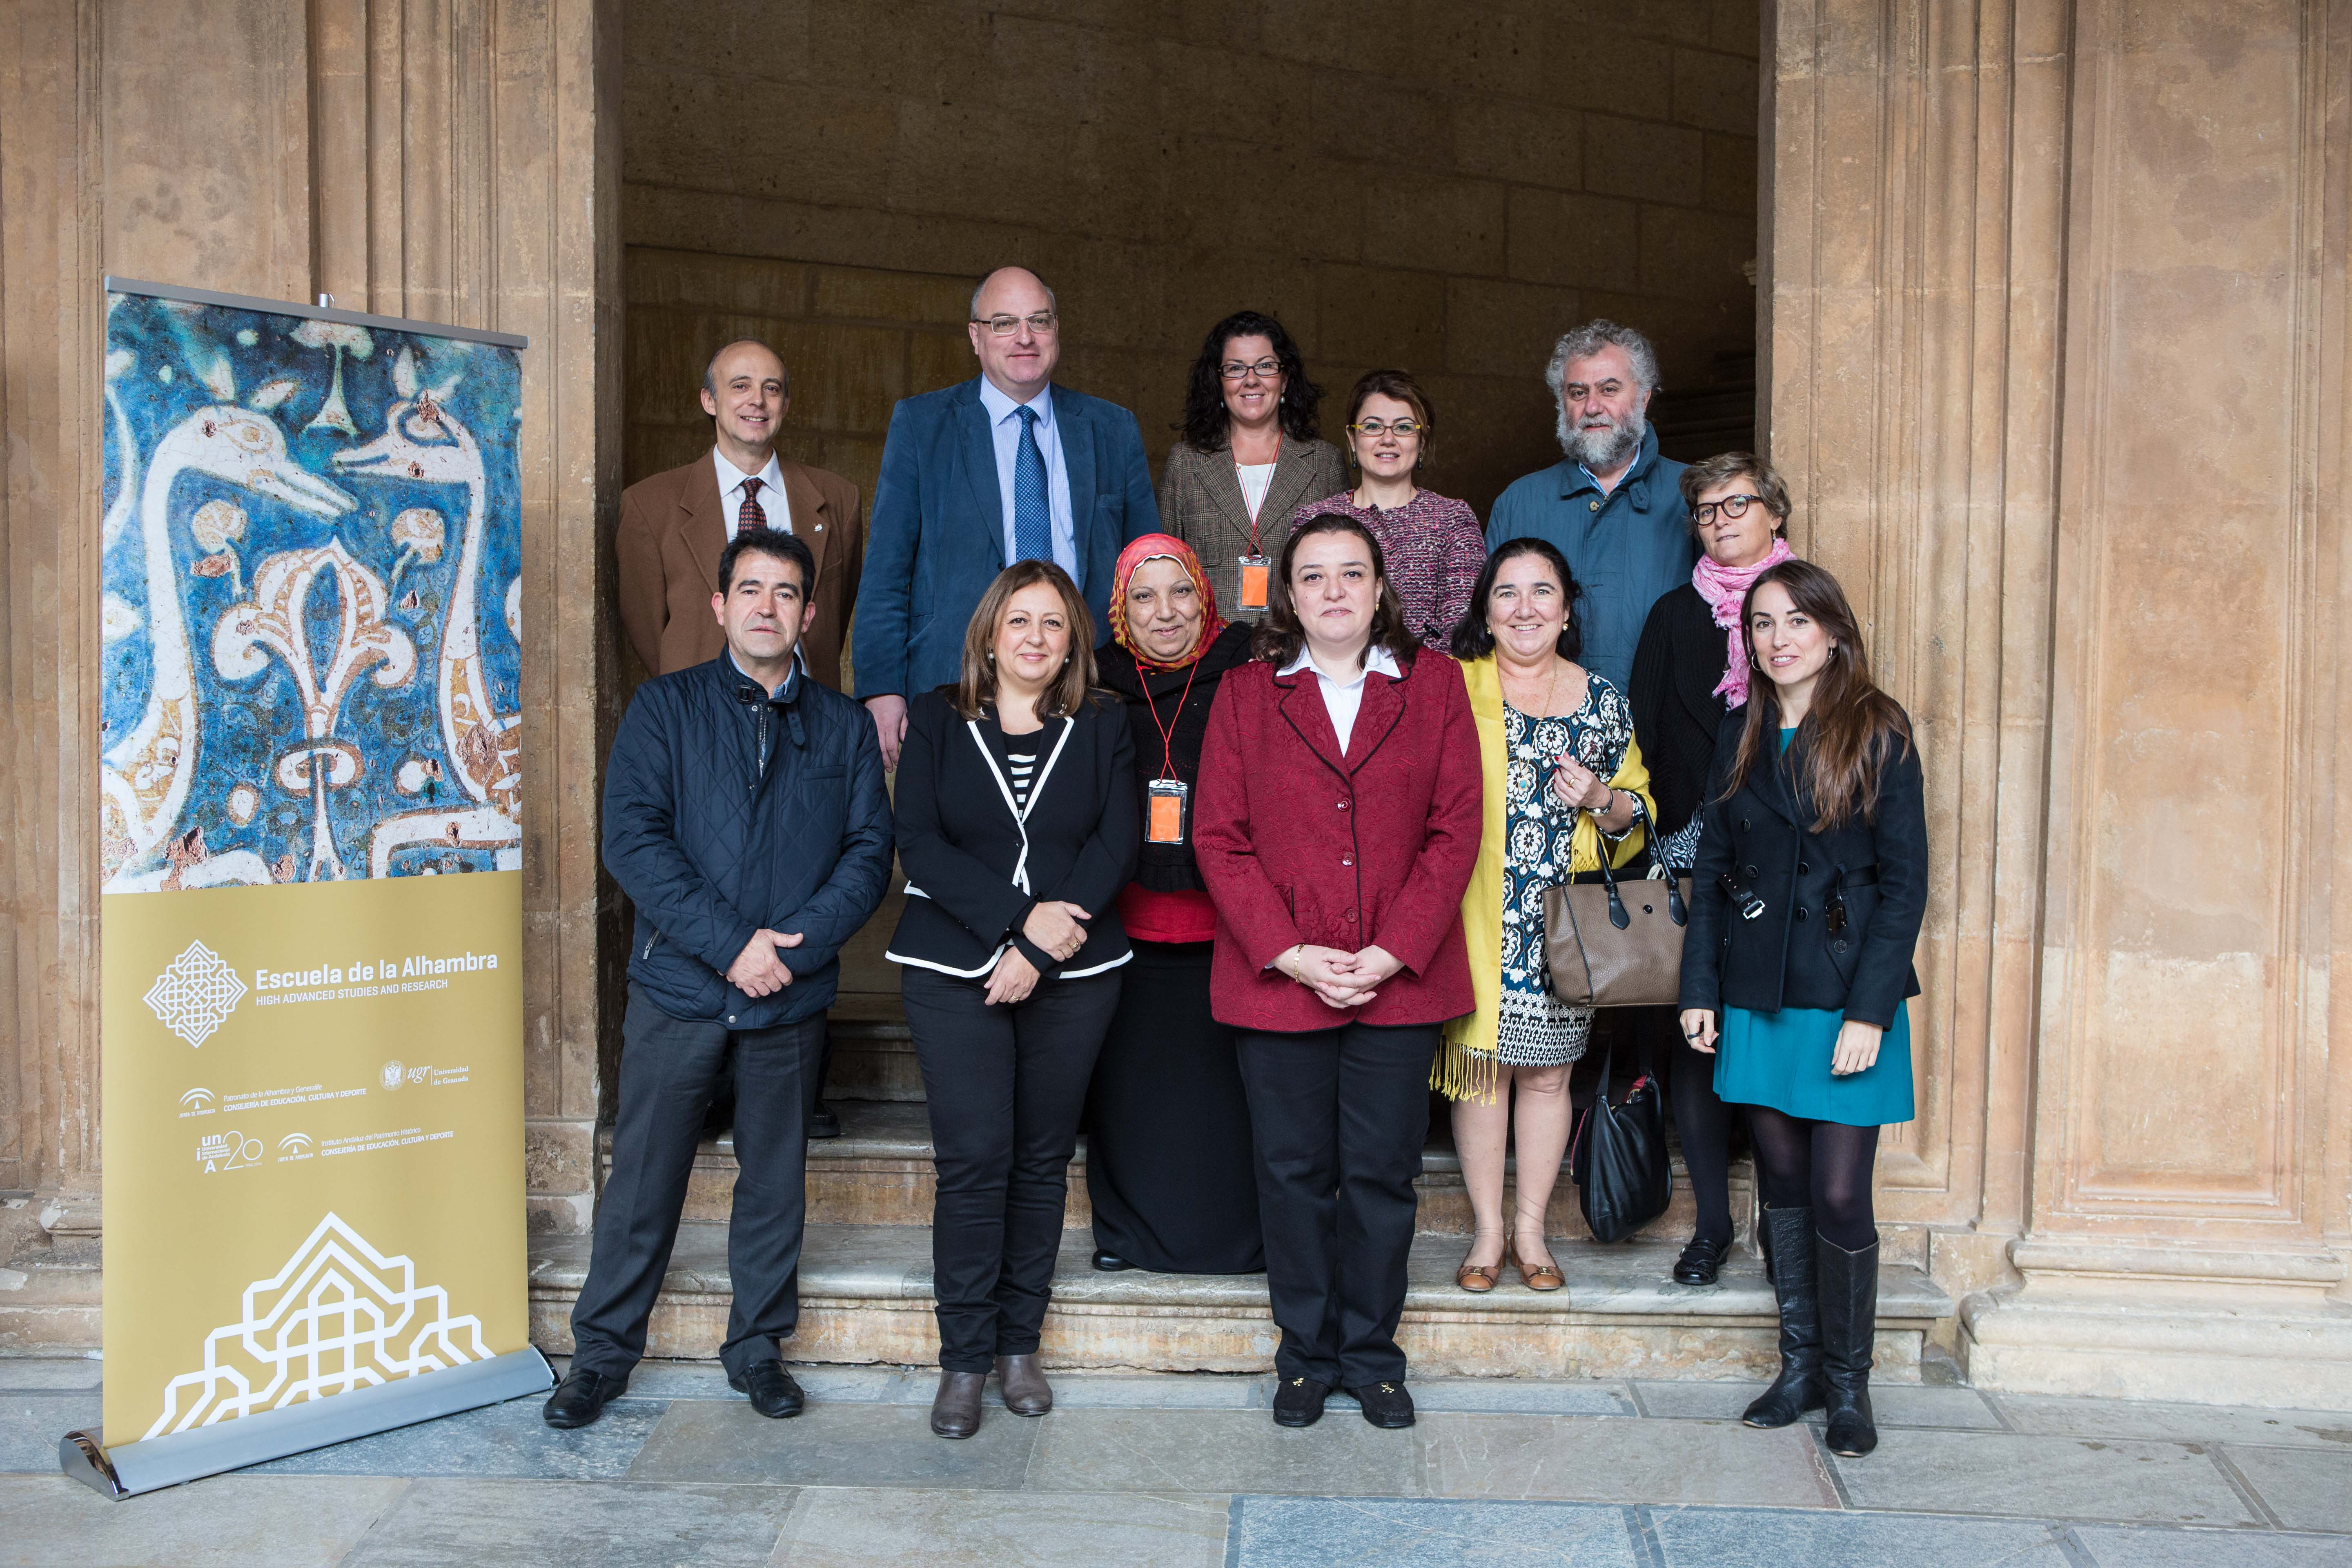 The Alhambra enters the world of historical archives with an international seminar at the Palace of Carlos V